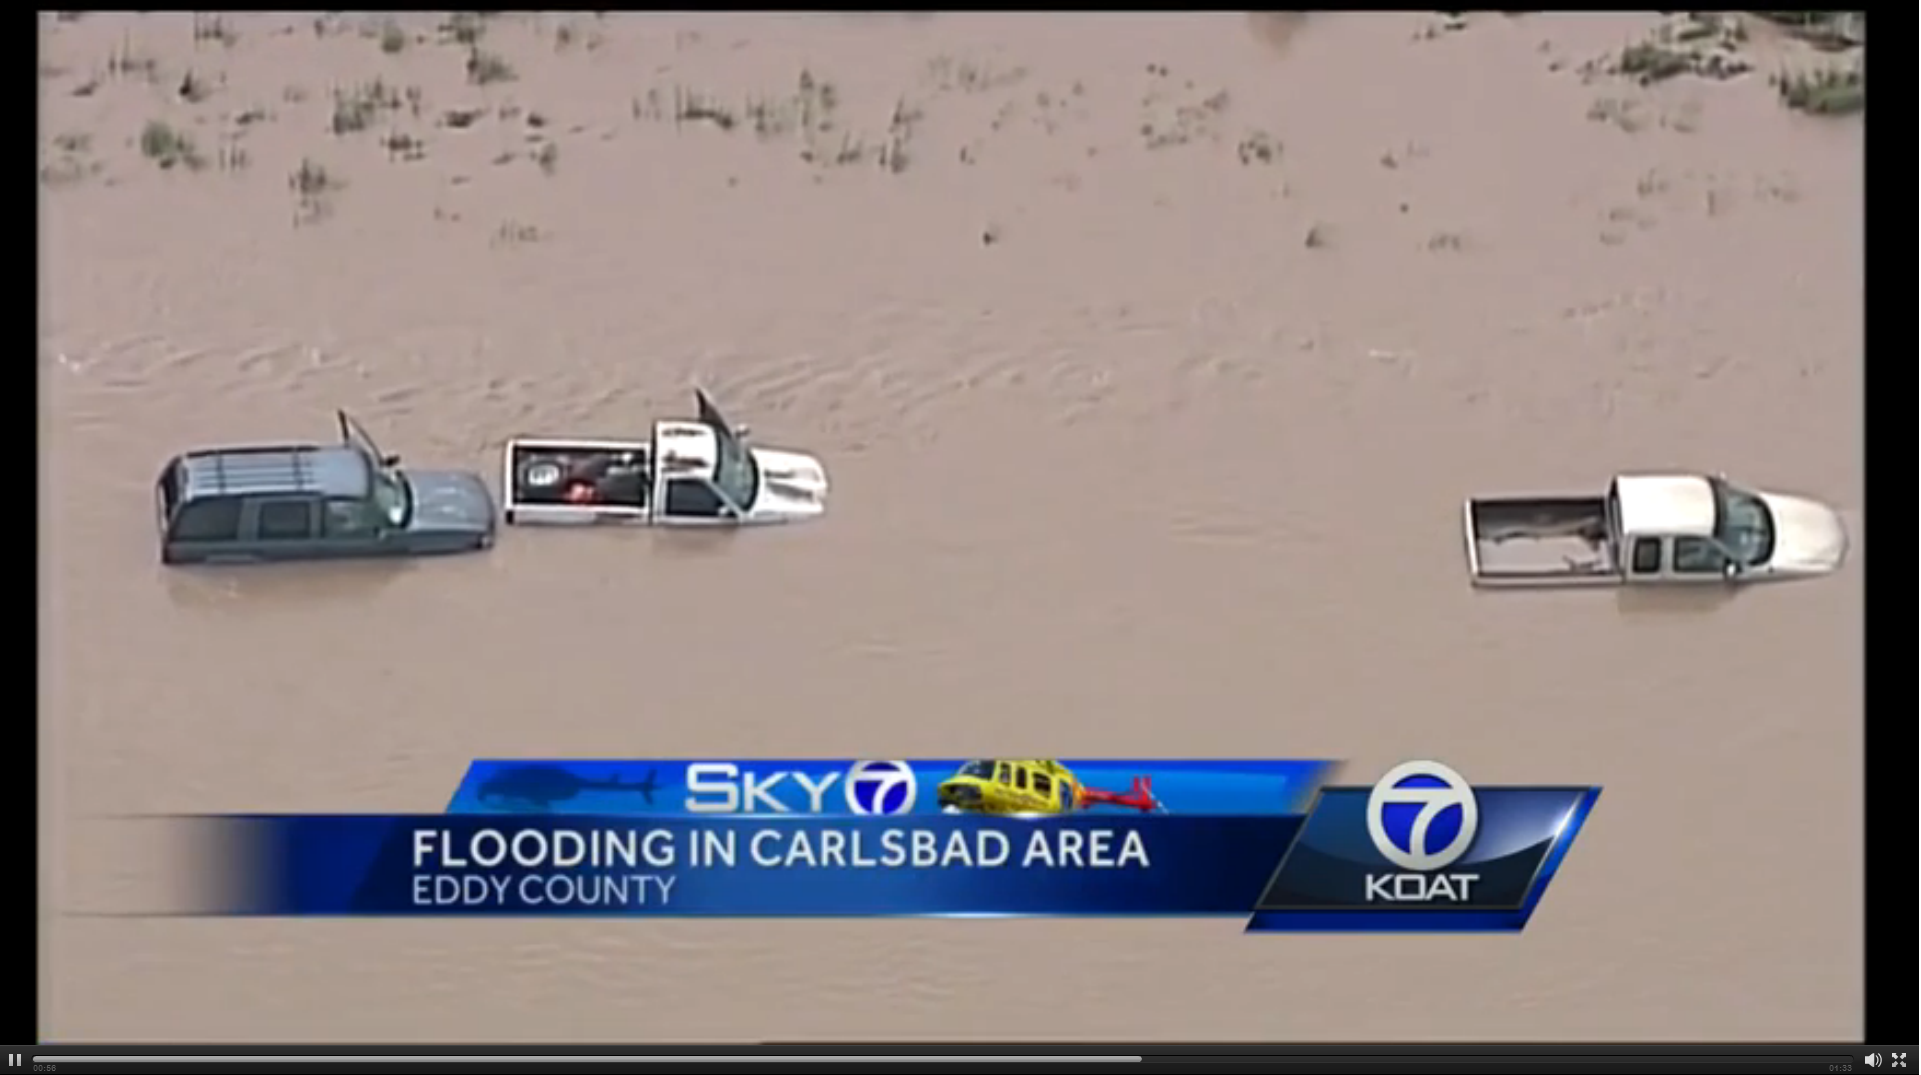 A picture of vehicles flooded in Eddy County New Mexico.